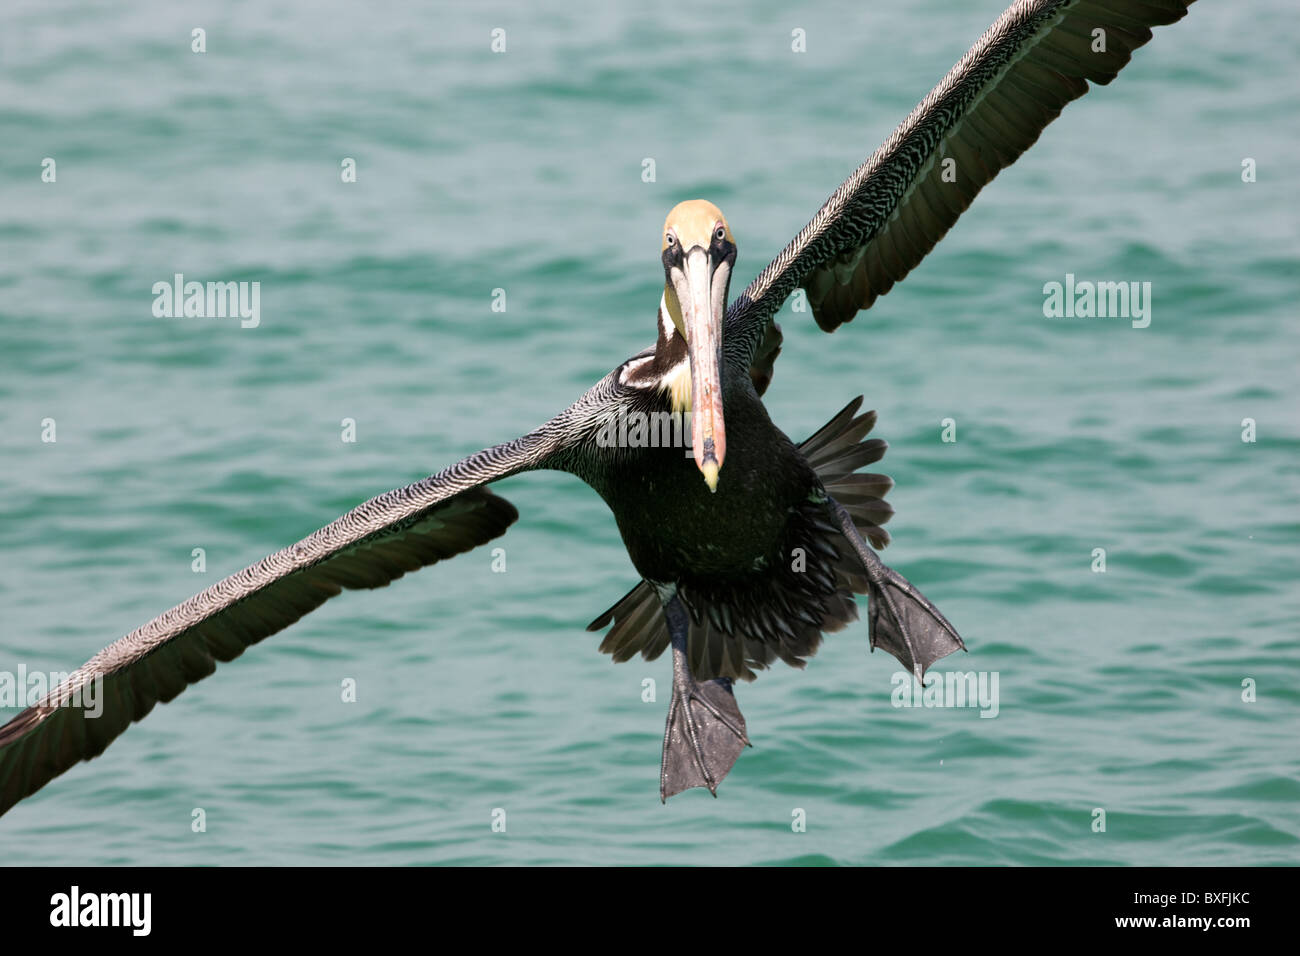 Brown pelican coming in to land off the Florida coast in the Gulf of Mexico by Anna Maria Island, United States - Stock Image